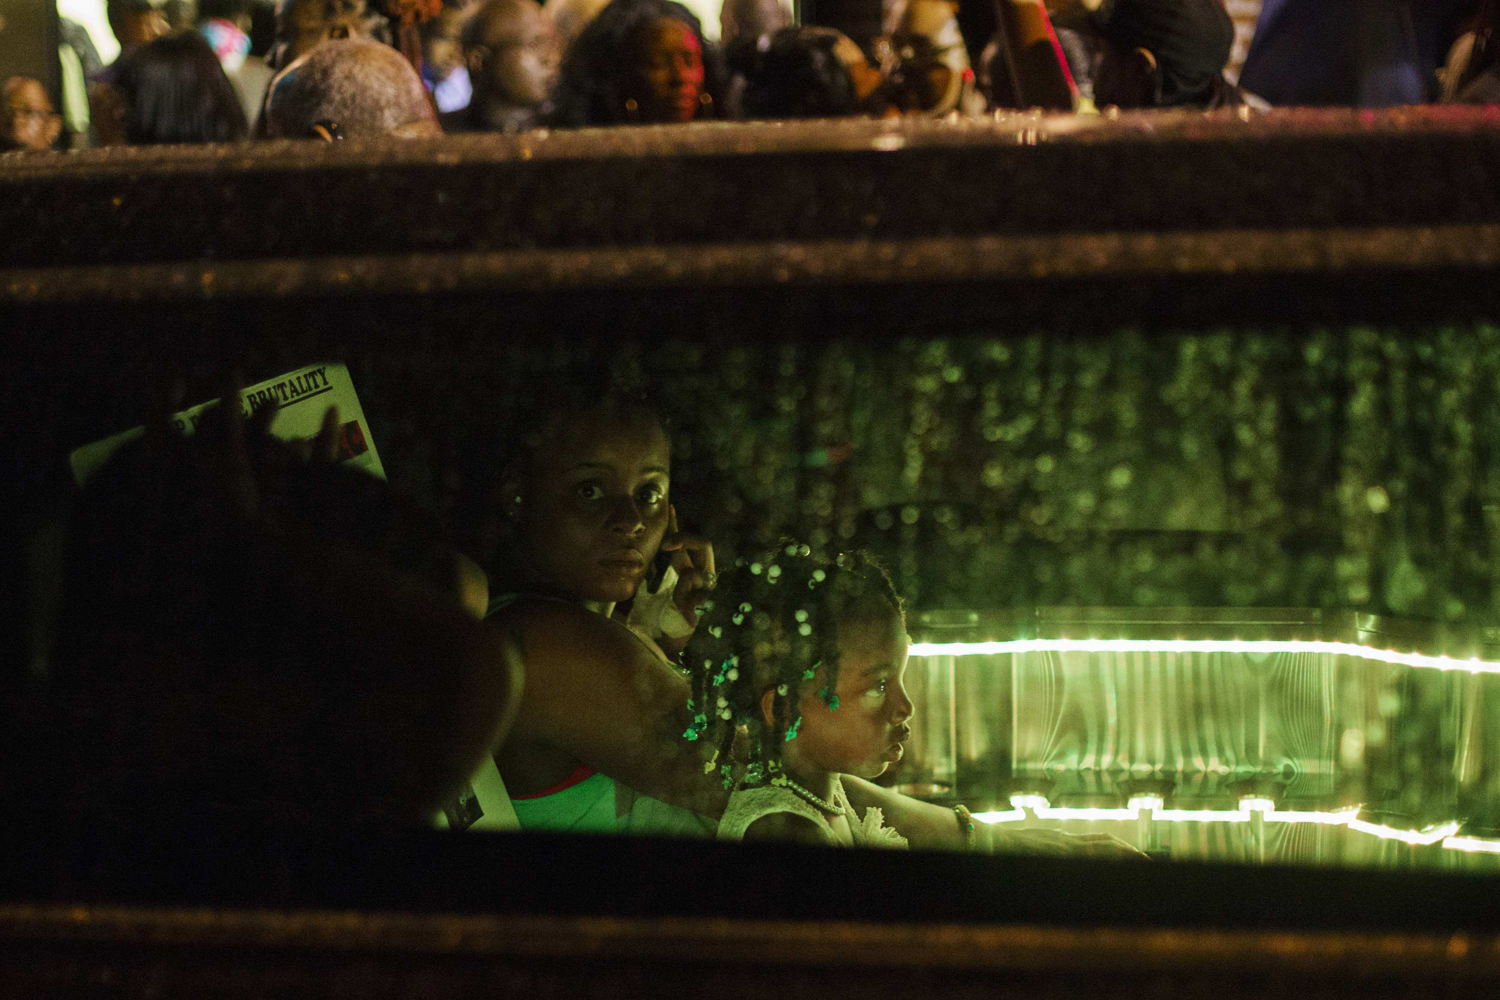 Jul. 23, 2014. Mourners wait in a limousine after attending the funeral of Eric Garner in New York.